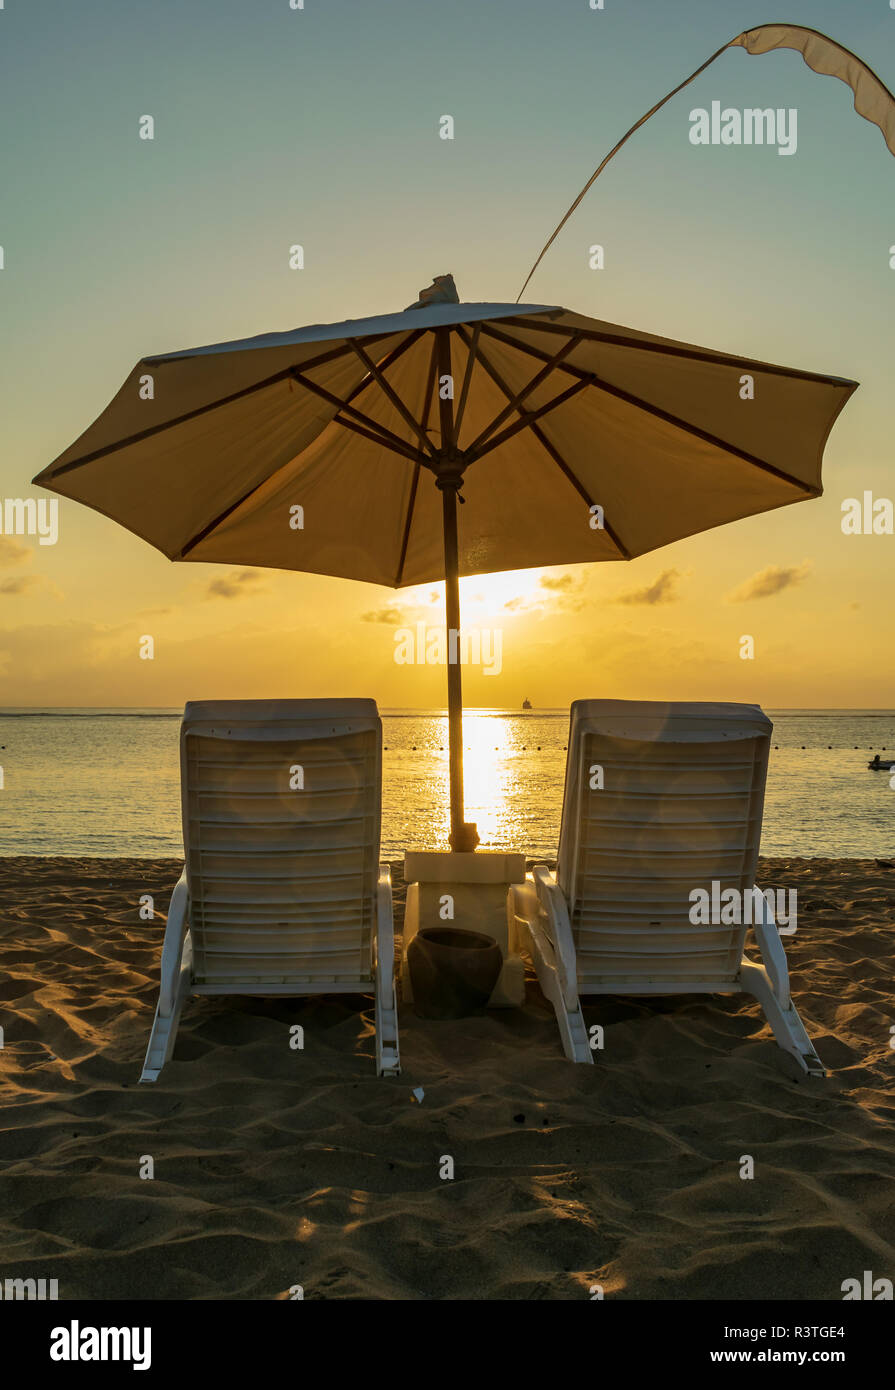 sunrise in Nusa Dua beach, a pair of white chaise lounges and a parasol / umbrella to enjoy the beautiful sunrise, beautiful Bali - Stock Image